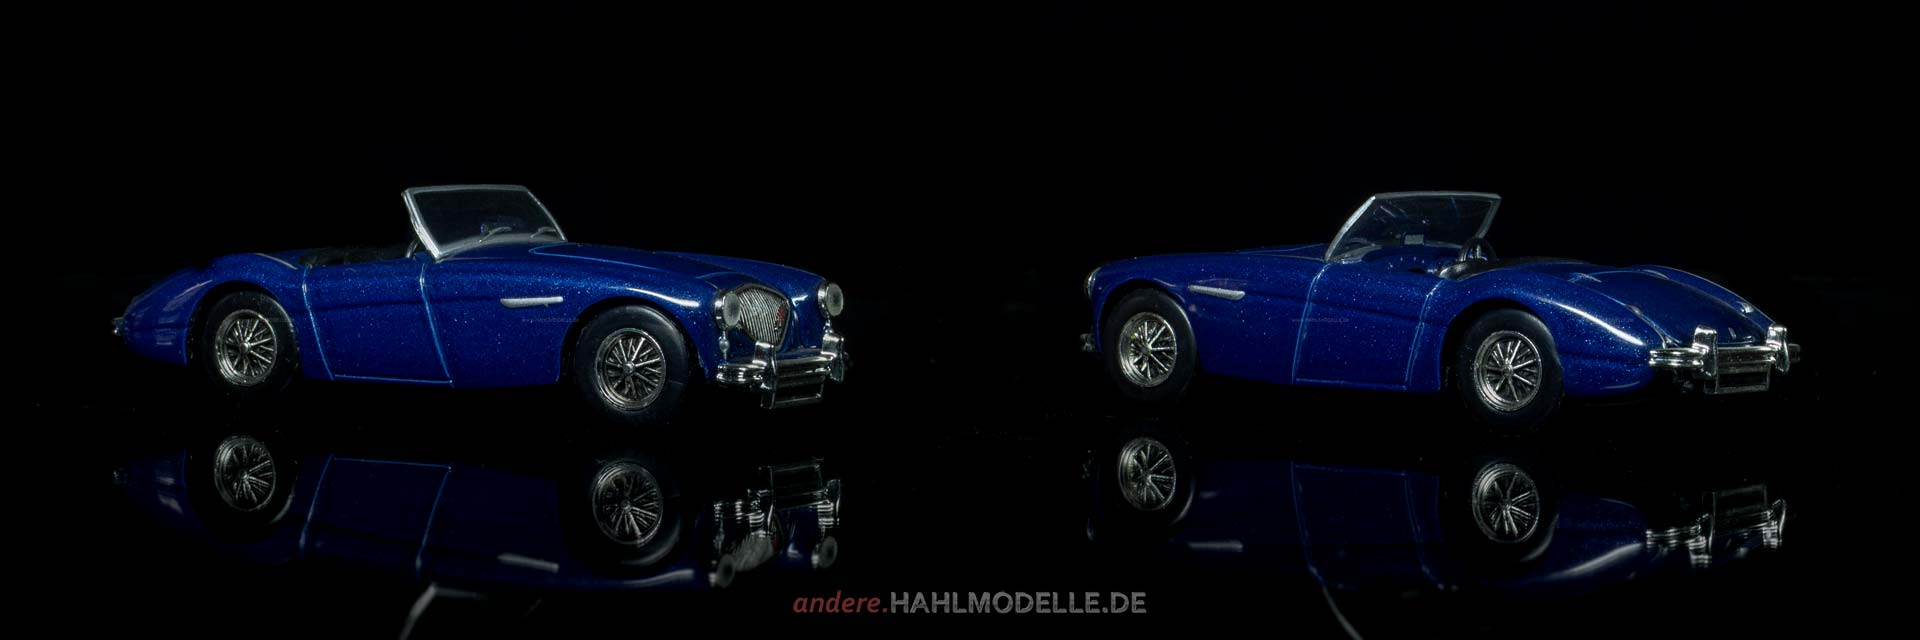 Austin-Healey 100 | Roadster | Ixo (Del Prado Car Collection) | 1:43 | www.andere.hahlmodelle.de